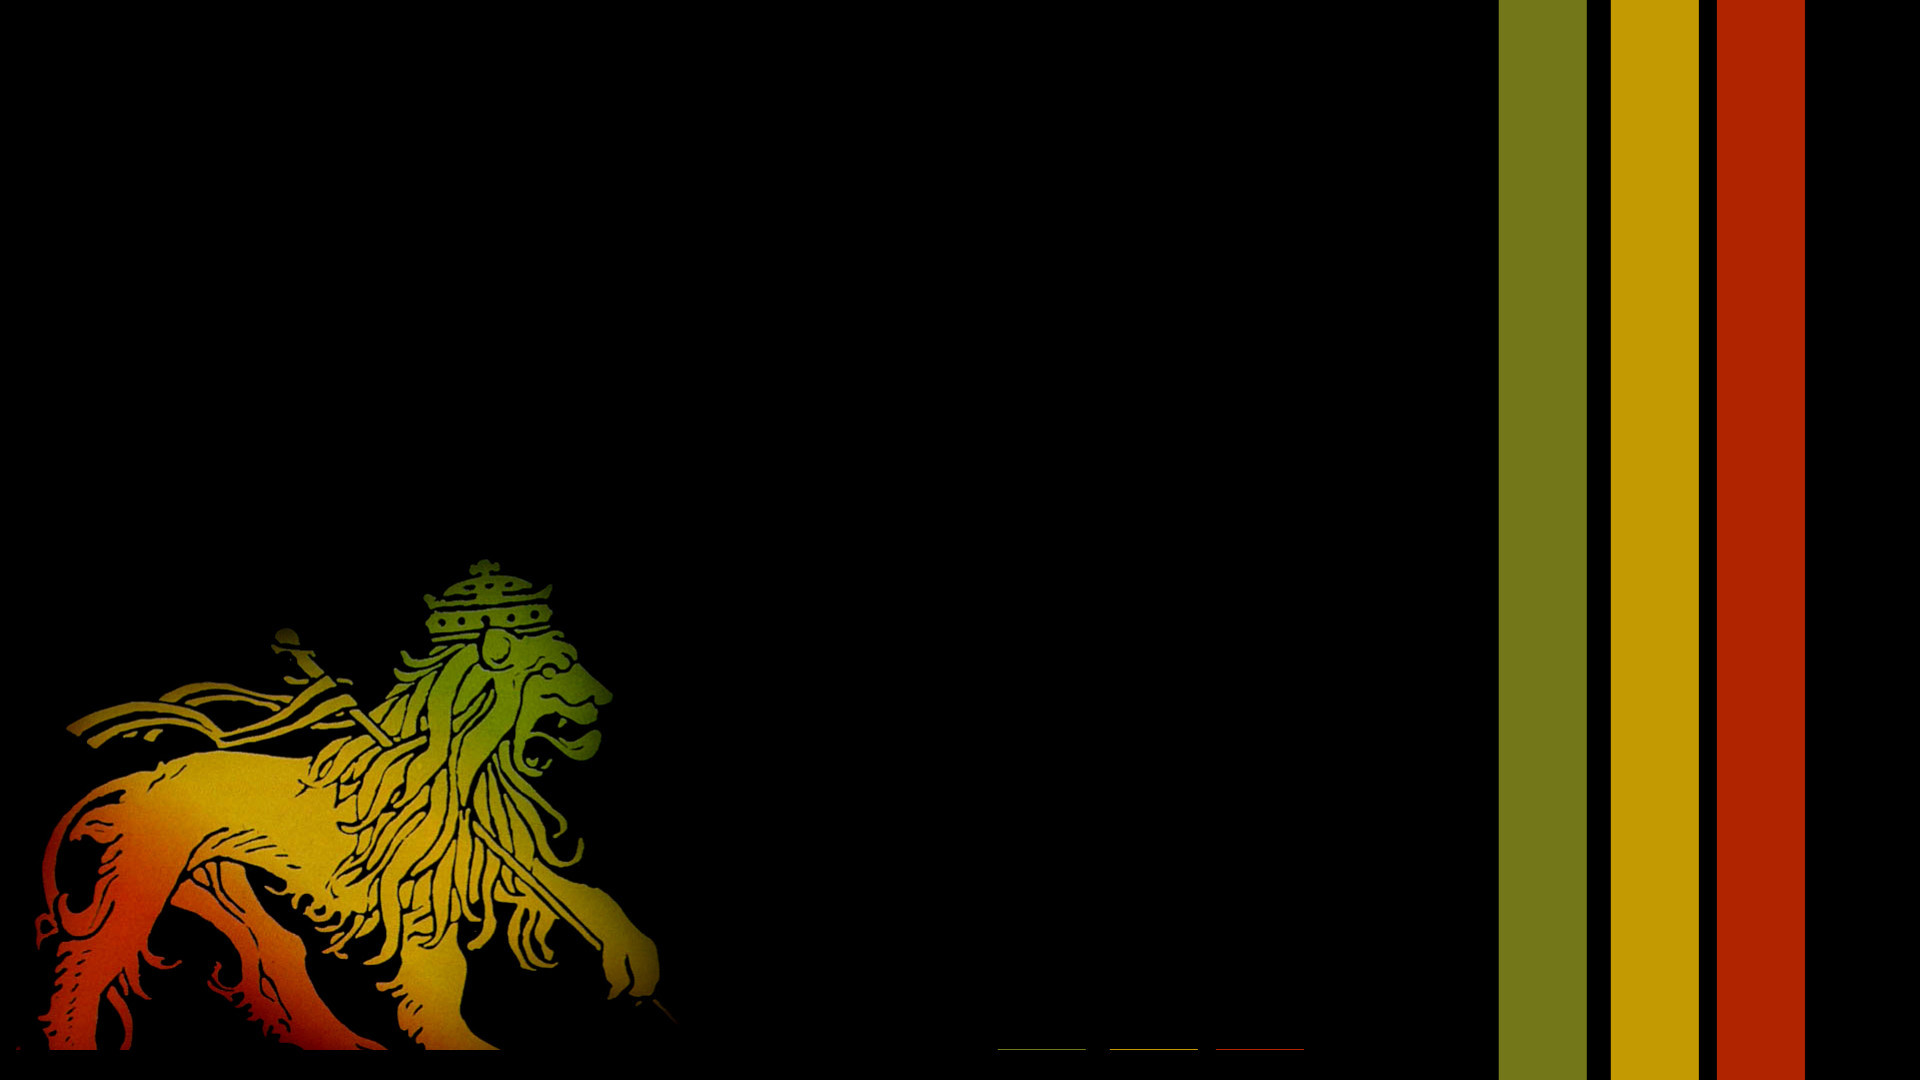 Rasta one love wallpaper